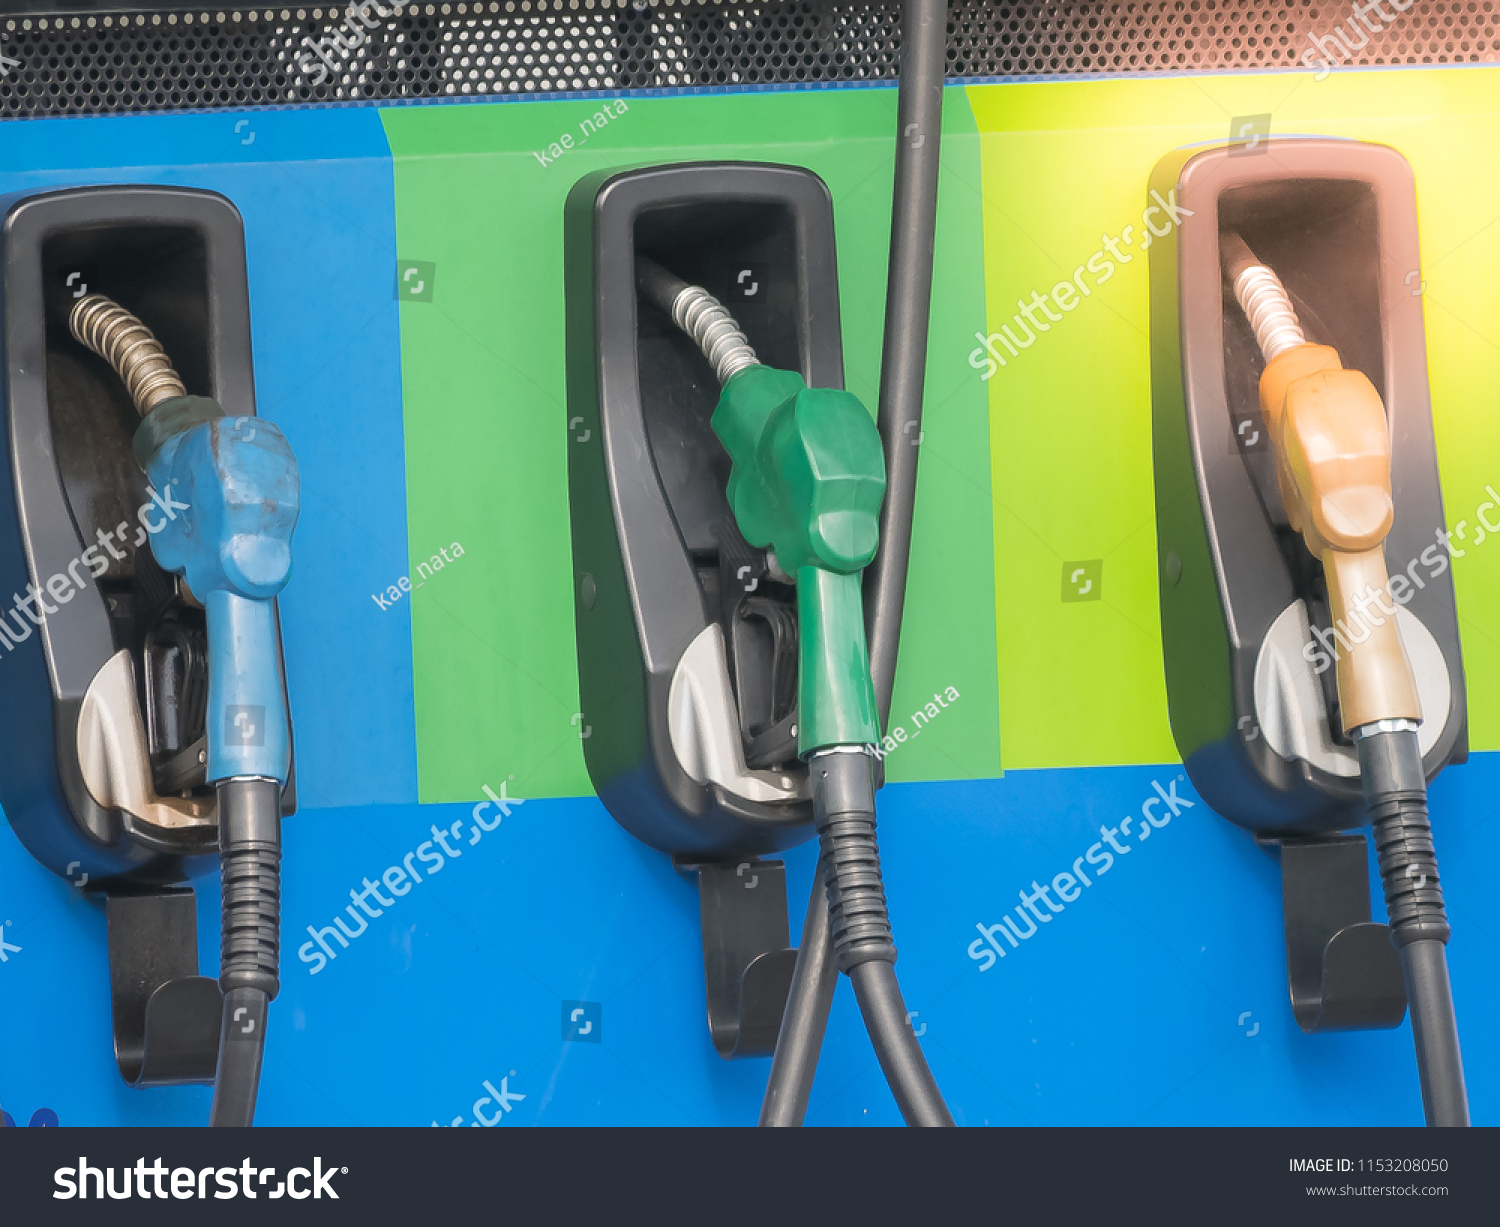 blue green orange fuel gasoline dispenser nozzles background at gas station #1153208050